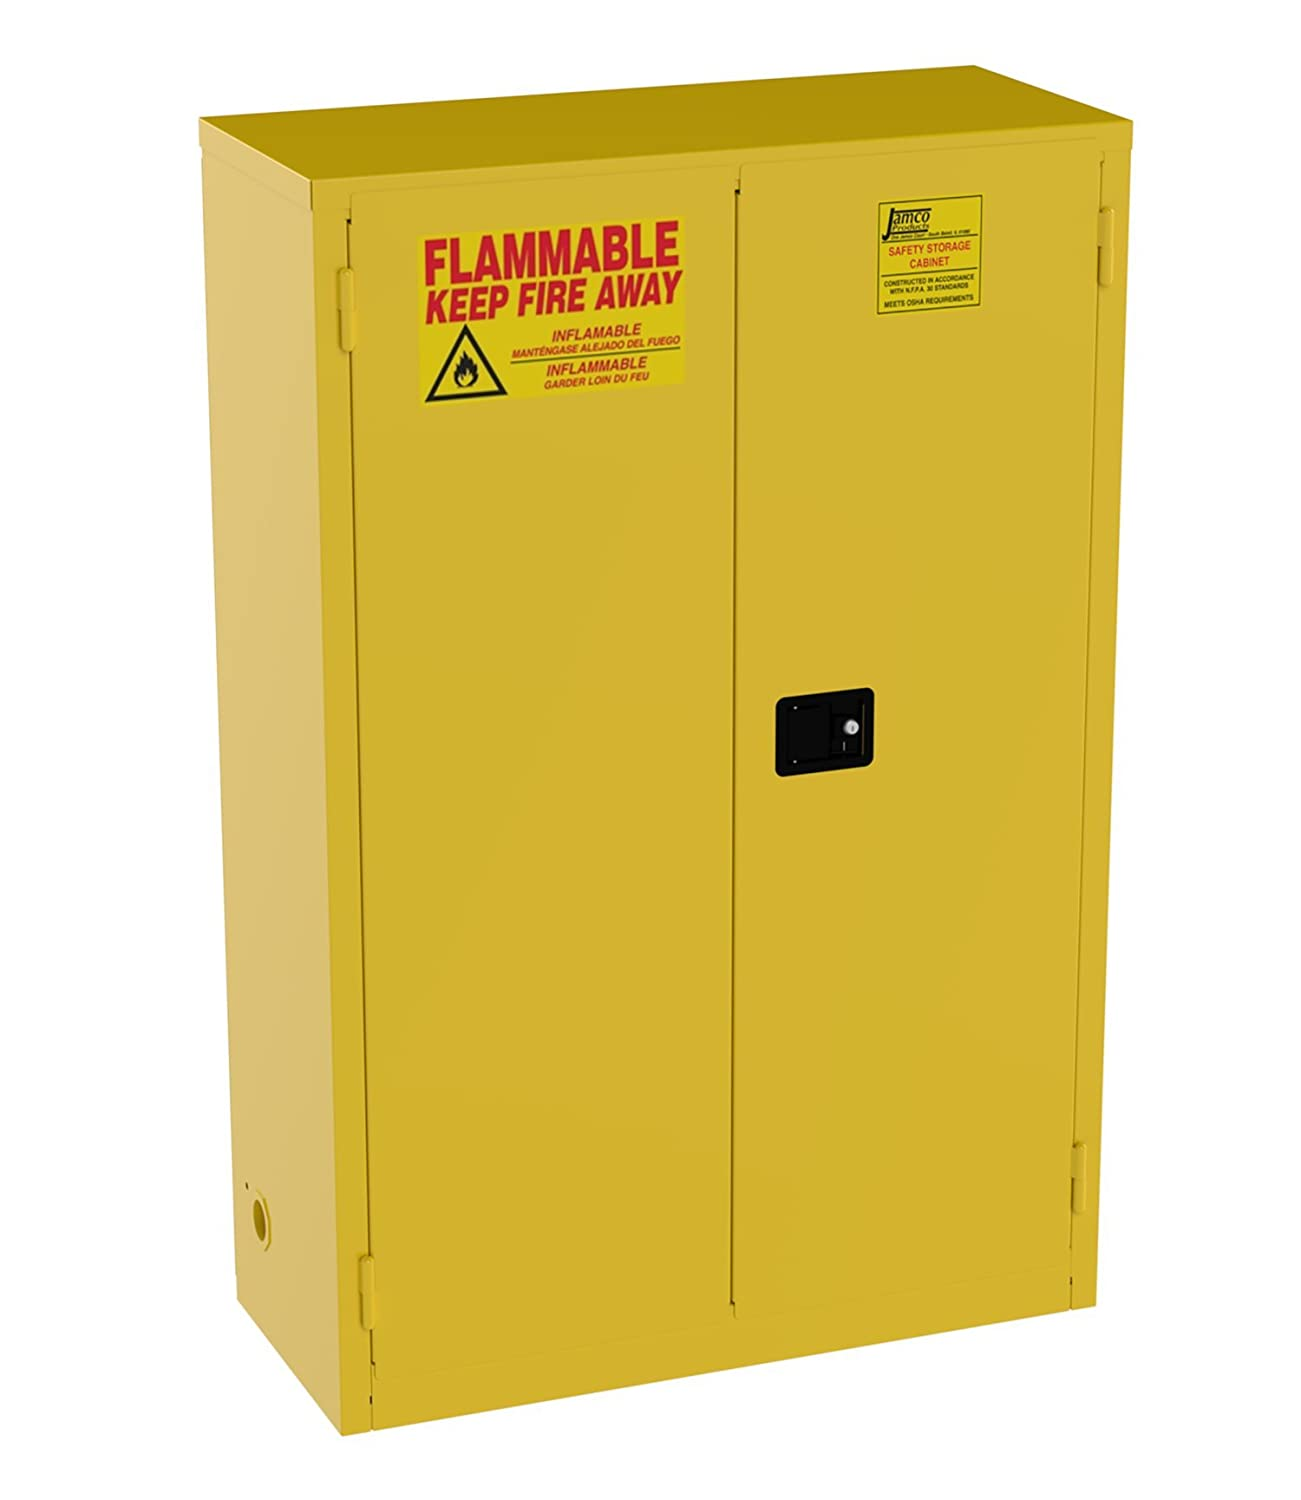 Jamco Products Inc BM45 YP Safety Flammable Cabinet, Two Door, Manual  Close, 43 Inch X 18 Inch X 65 Inch   Tool Cabinets   Amazon.com